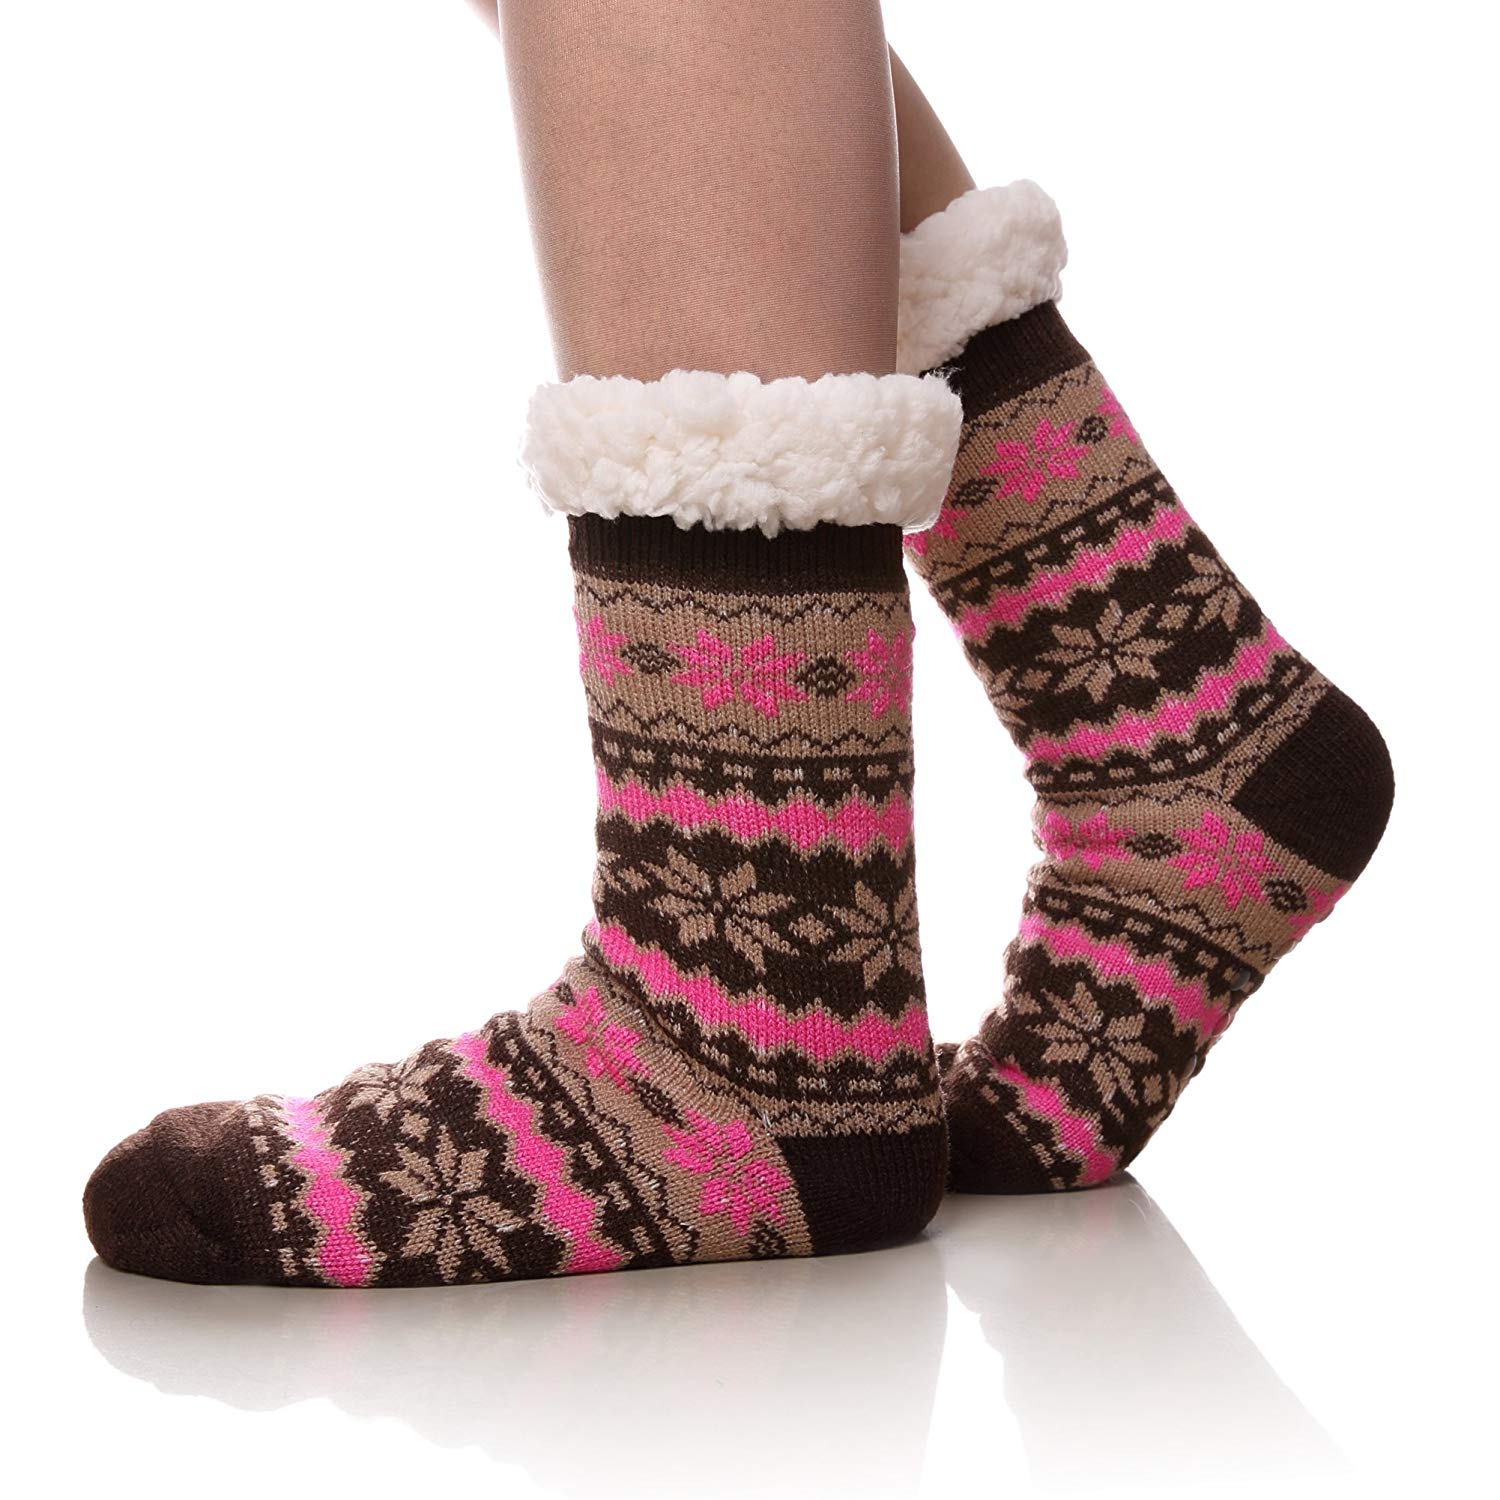 502d024215066 Get Quotations · Women's Warm Fleece-Lined Cozy Thick Winter Knee Highs  Slipper Socks-Christmas Stockings